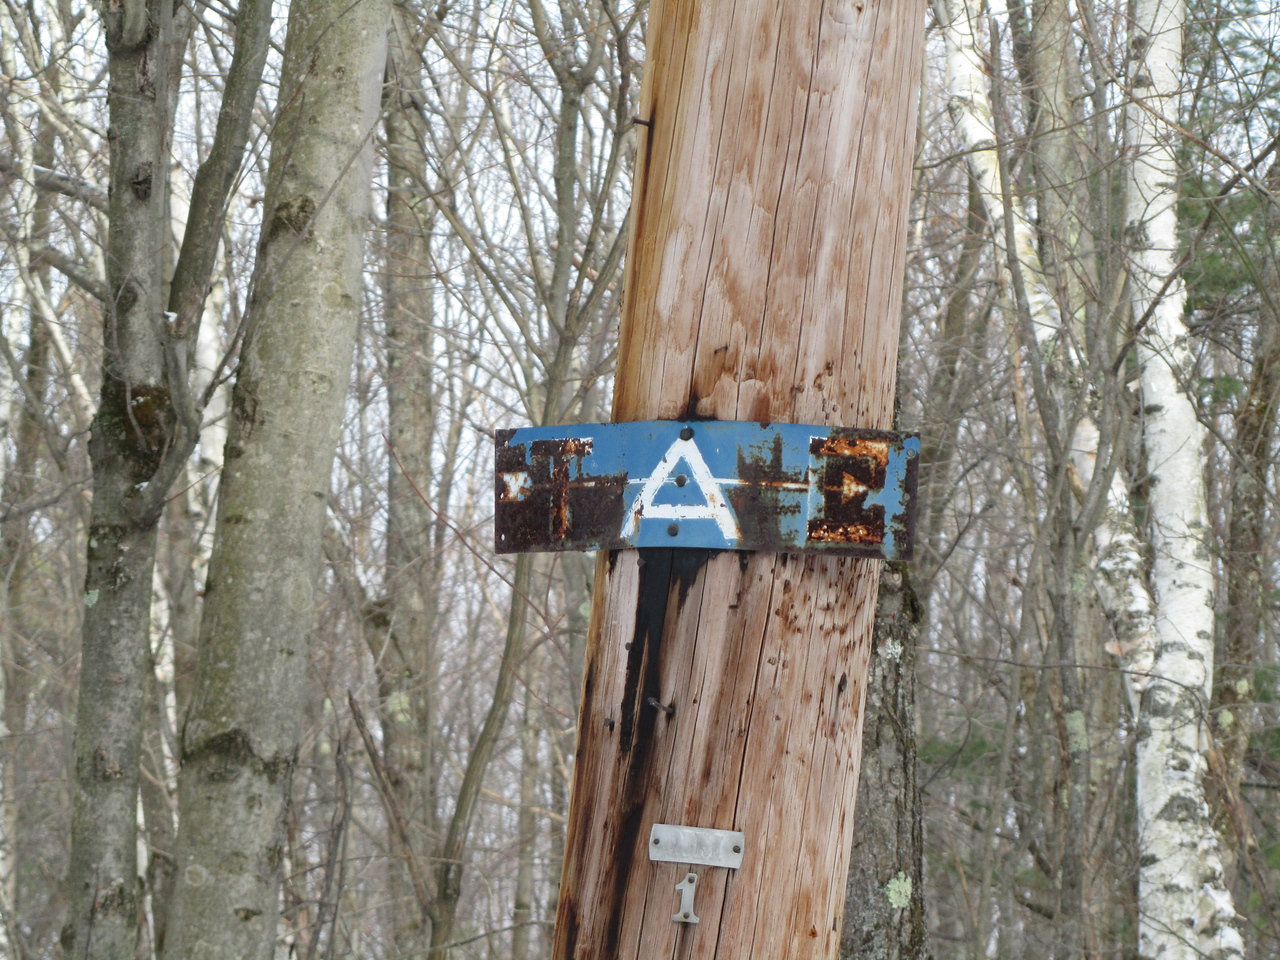 And the old trail marker telling us that TAC is to the right. This one fits right in with the Grafton Lake trail map nomenclature.